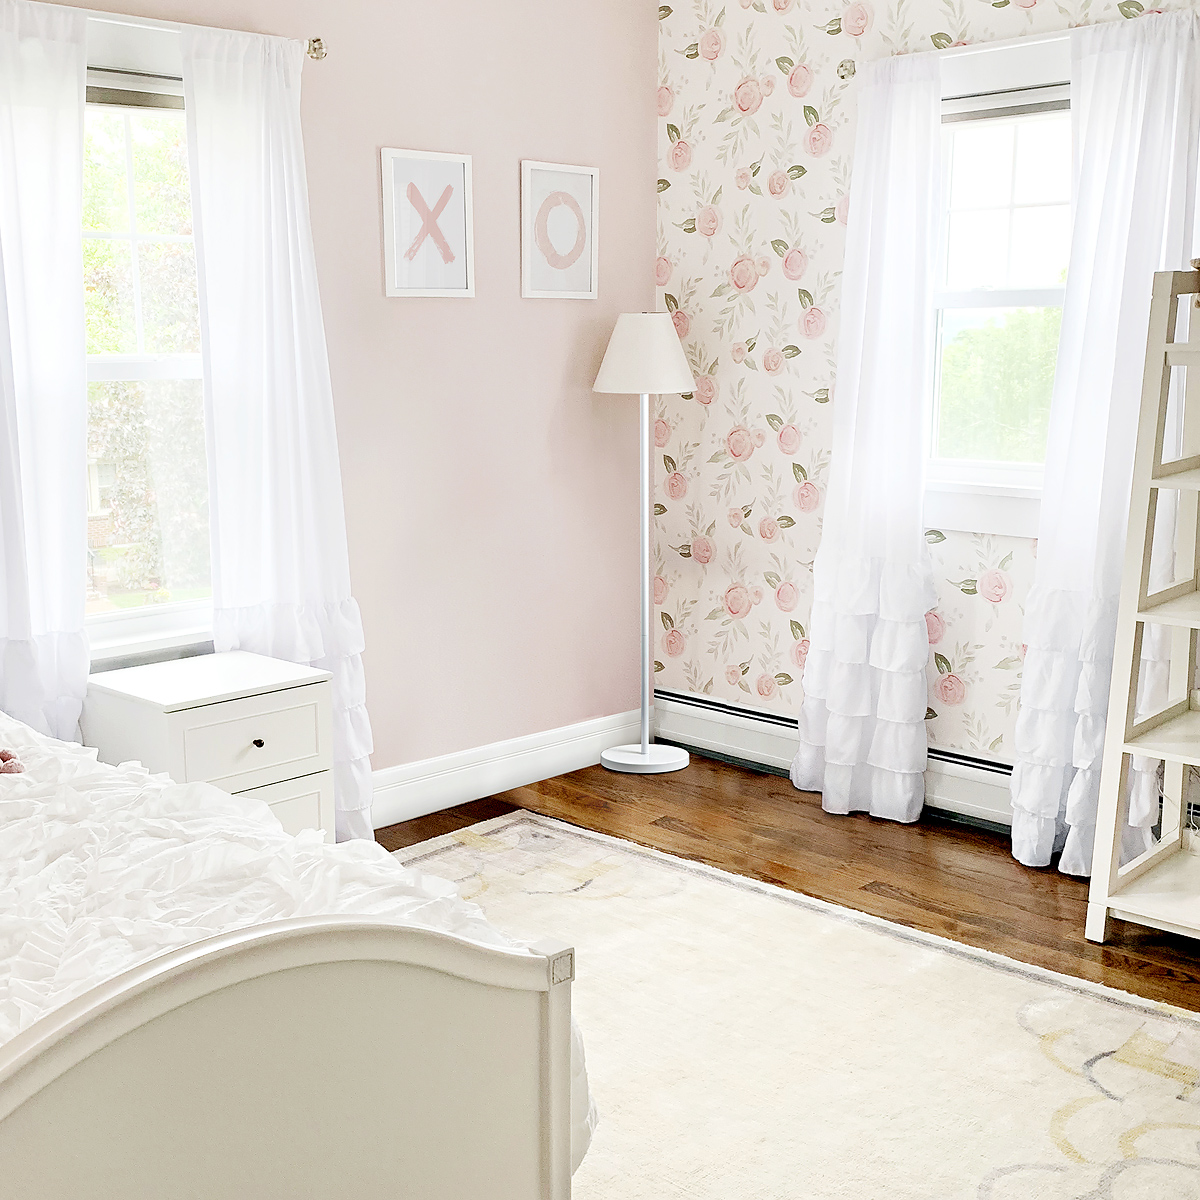 Copy of Girl bedroom